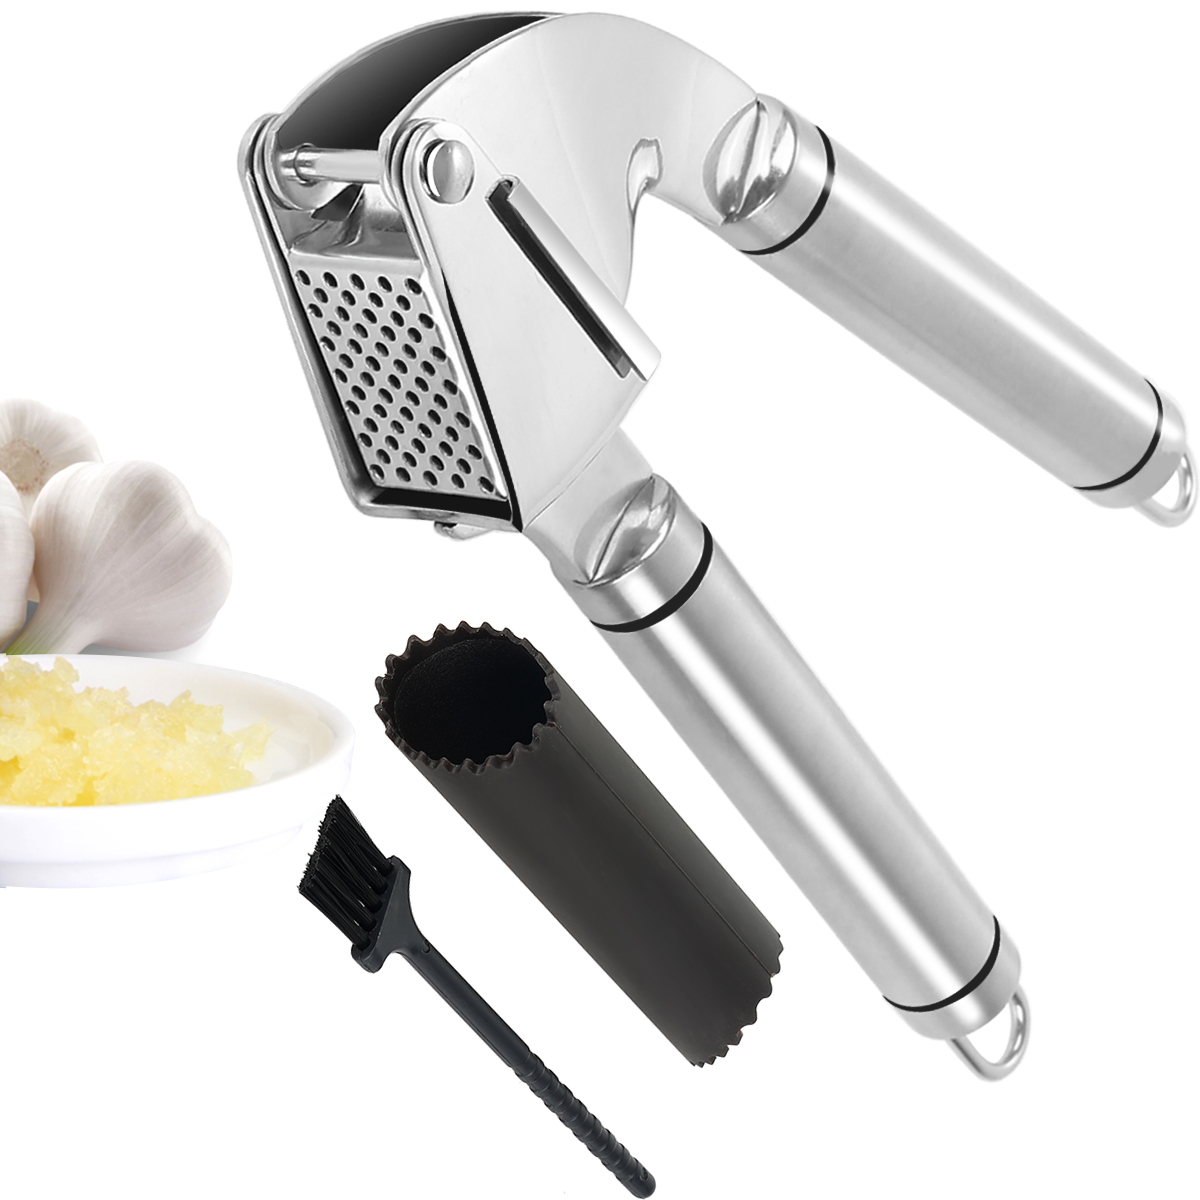 Stainless Steel Garlic Press,Grillers Garlic Press and Peeler Set and Silicone Tube Roller